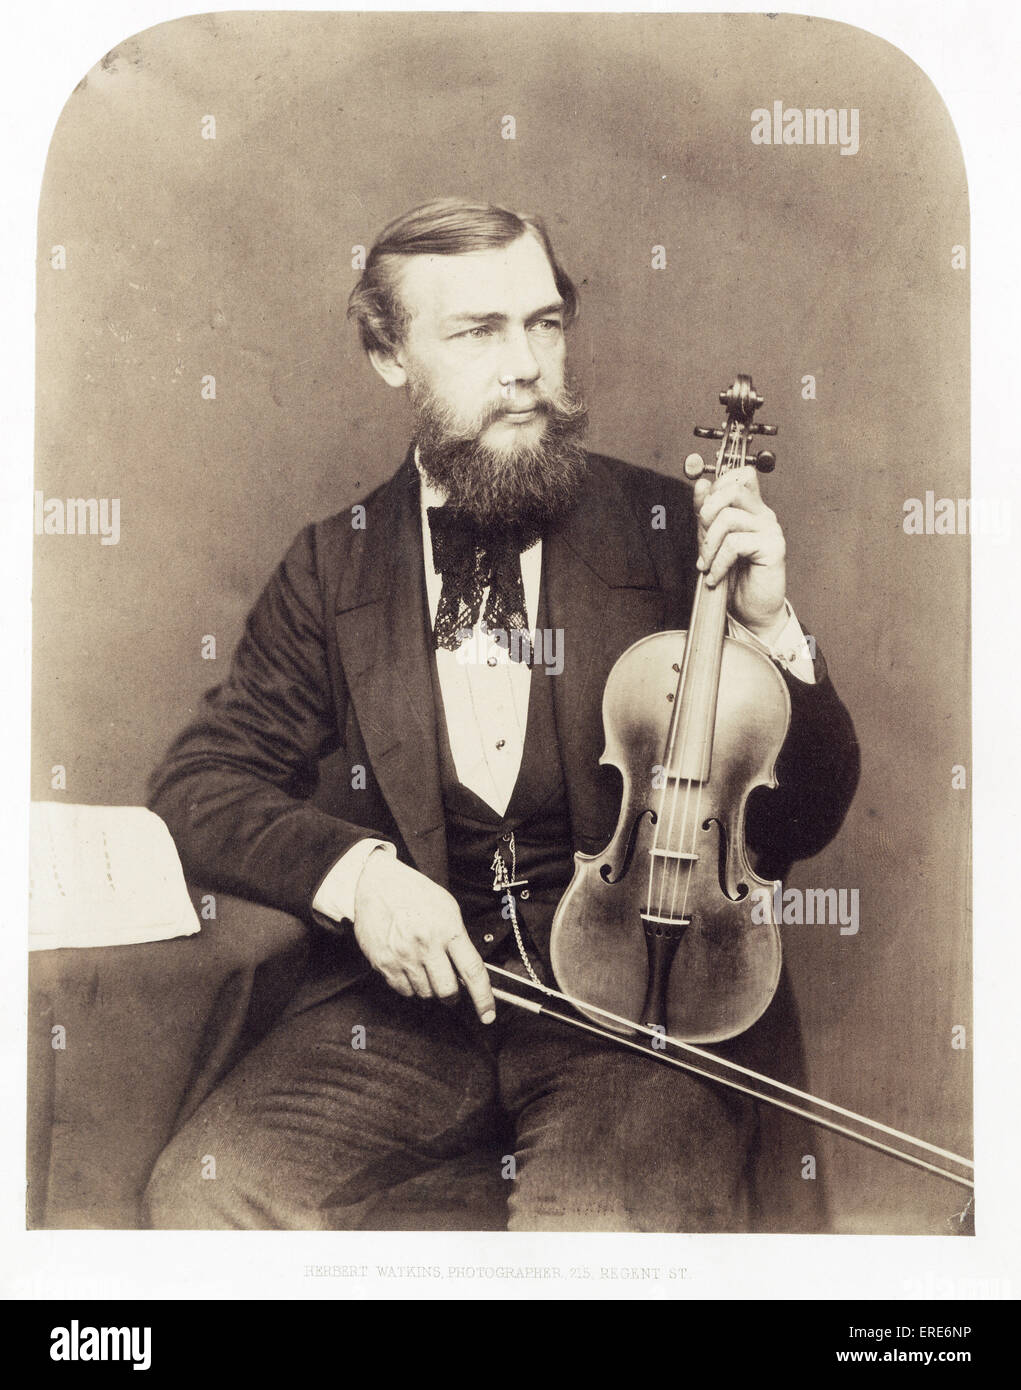 Violinist (unidentified male sitter, anon.) holding a 'Golden Period' instrument by Stradivari, and a bow. - Stock Image